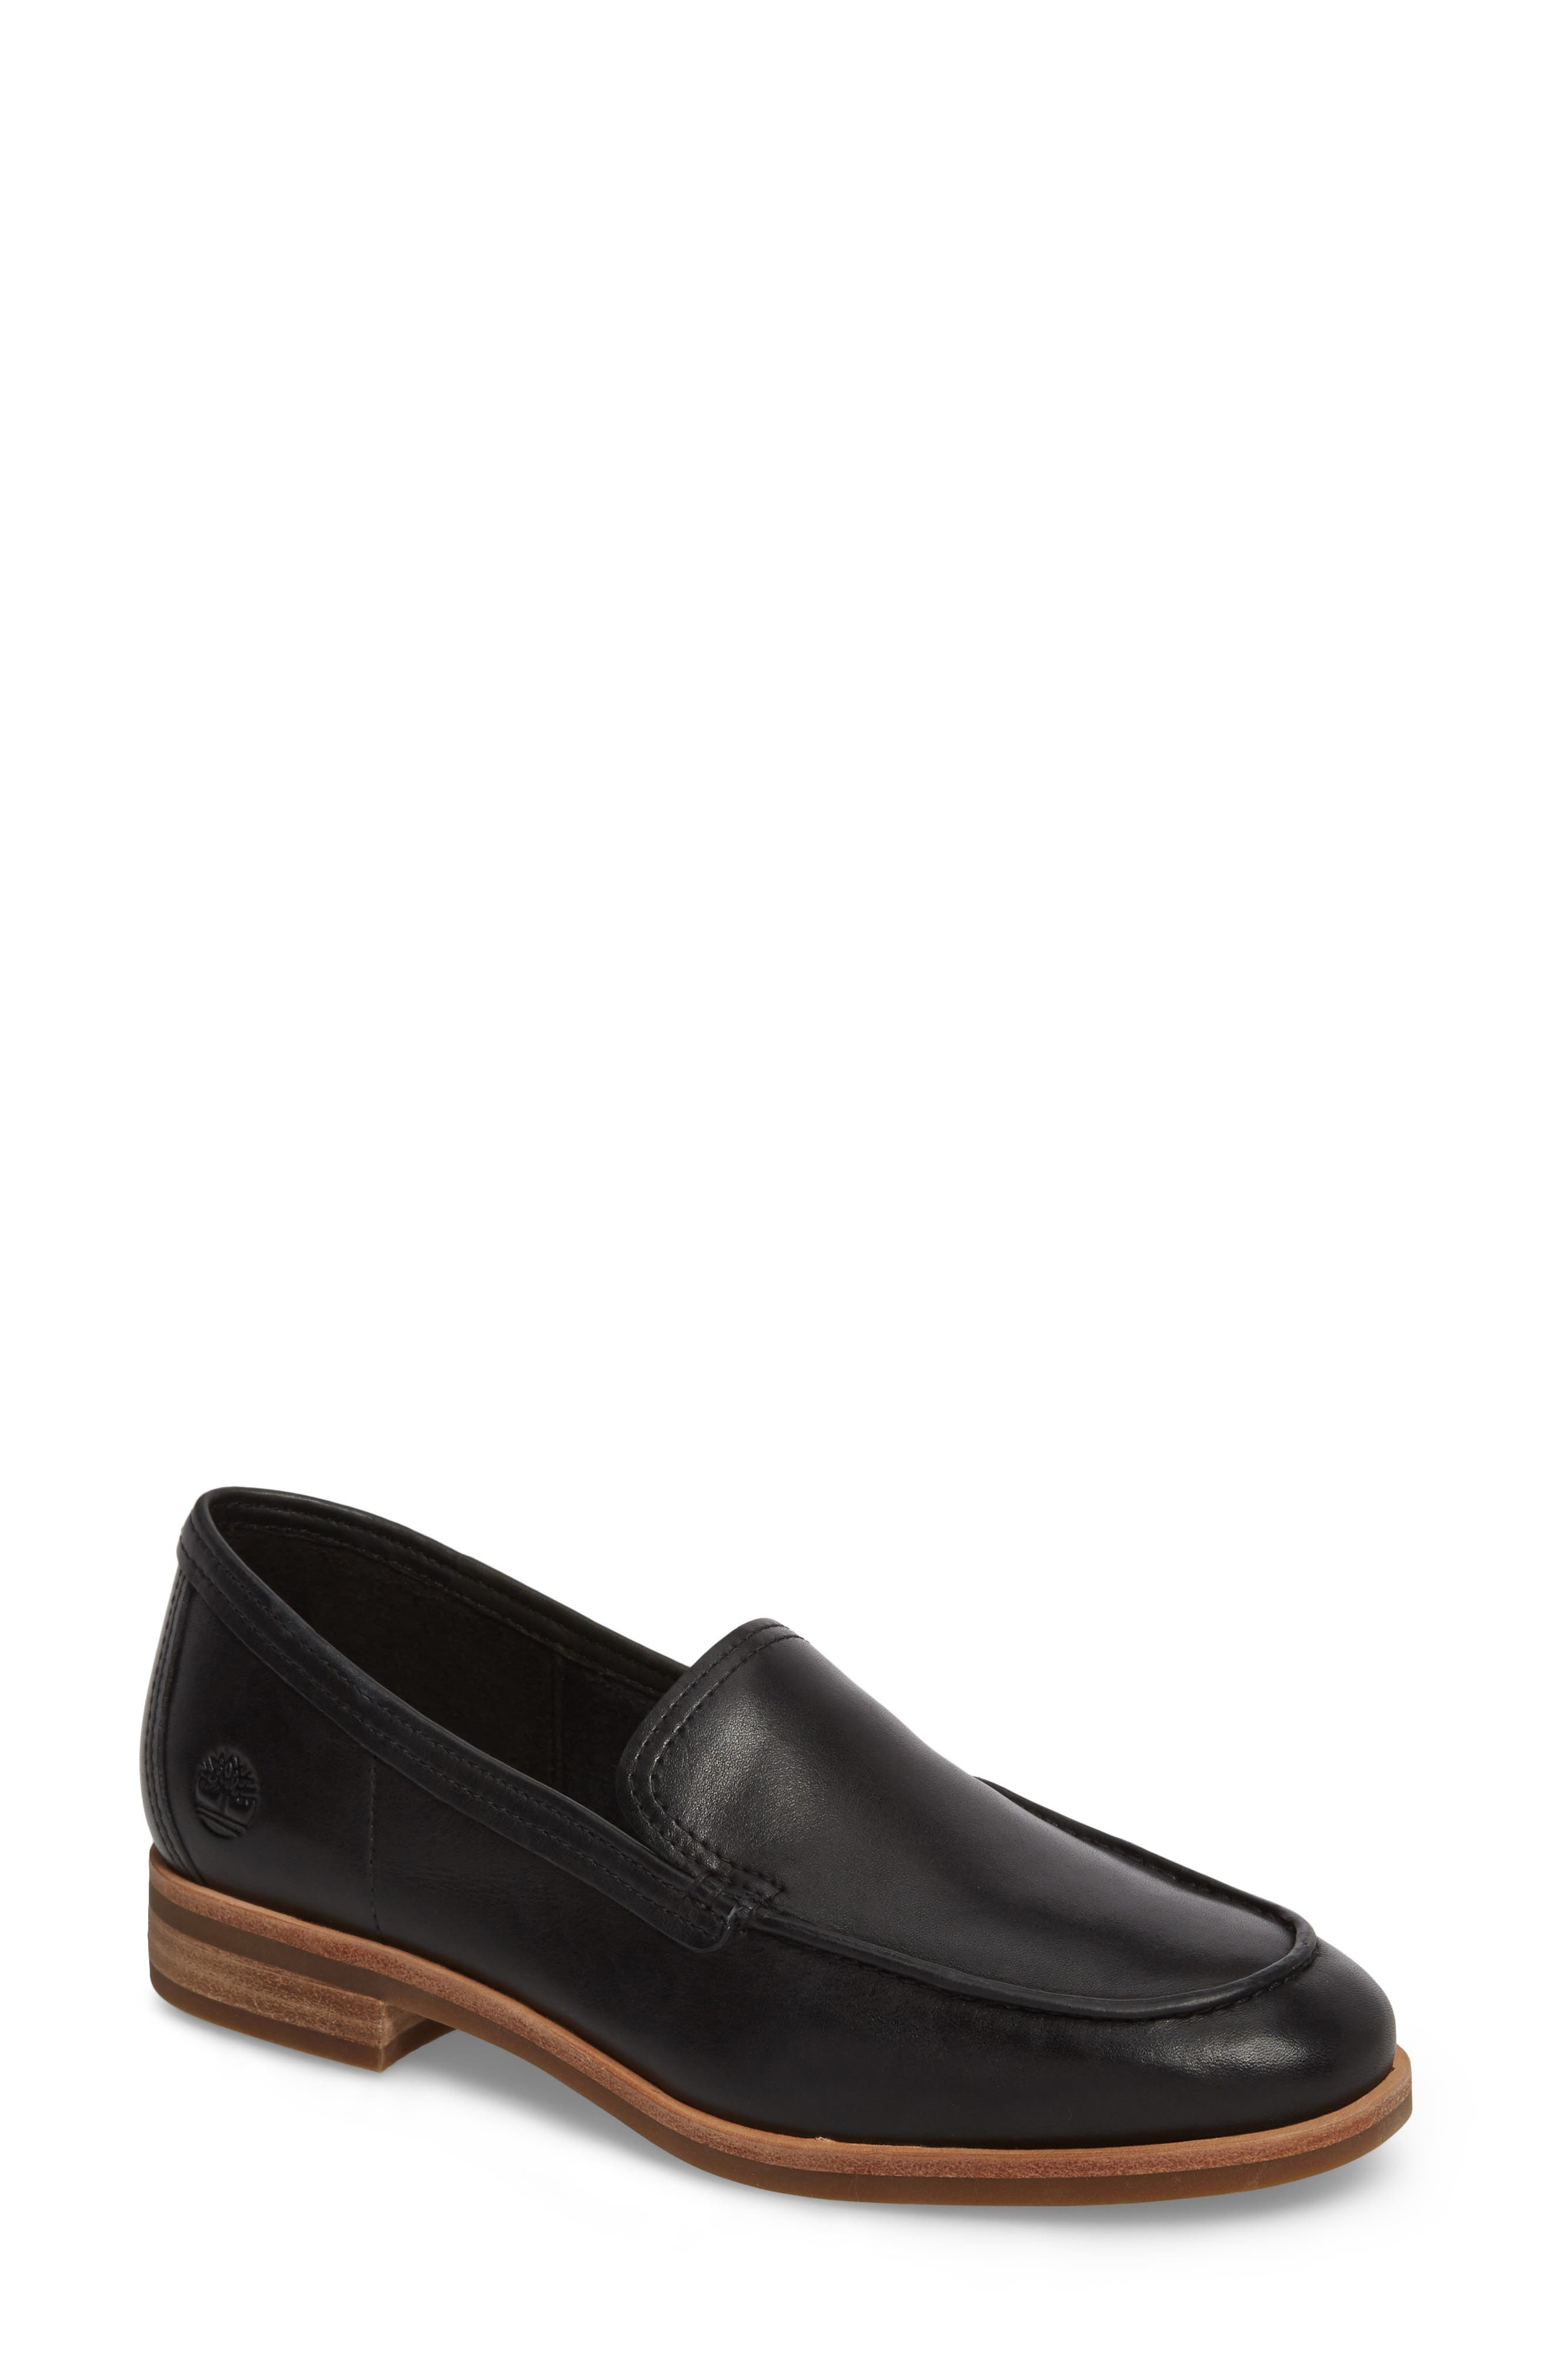 Somers Falls Loafer,                             Main thumbnail 1, color,                             001